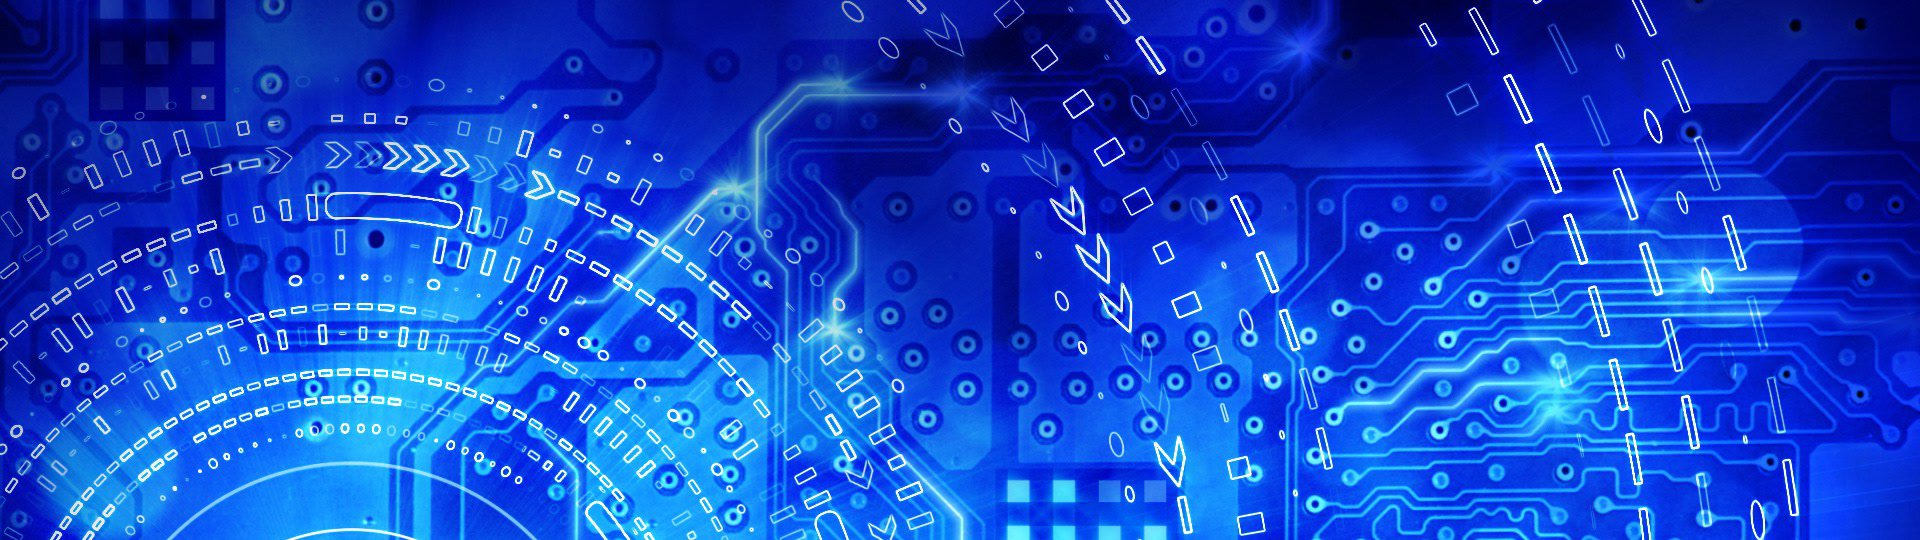 Blue computer circuit board background loop | computer generated seamless loop hi-tech motion background. blue computer circuit board - ID:12448